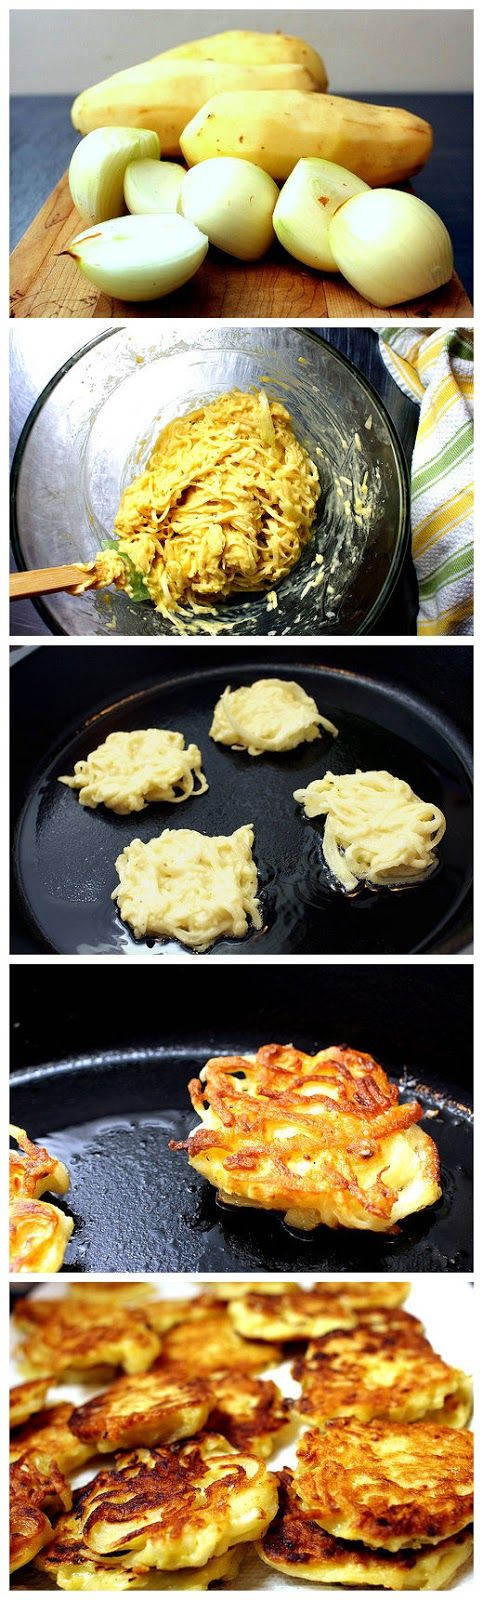 potato pancakes, even better | Potato Obsession | Pinterest